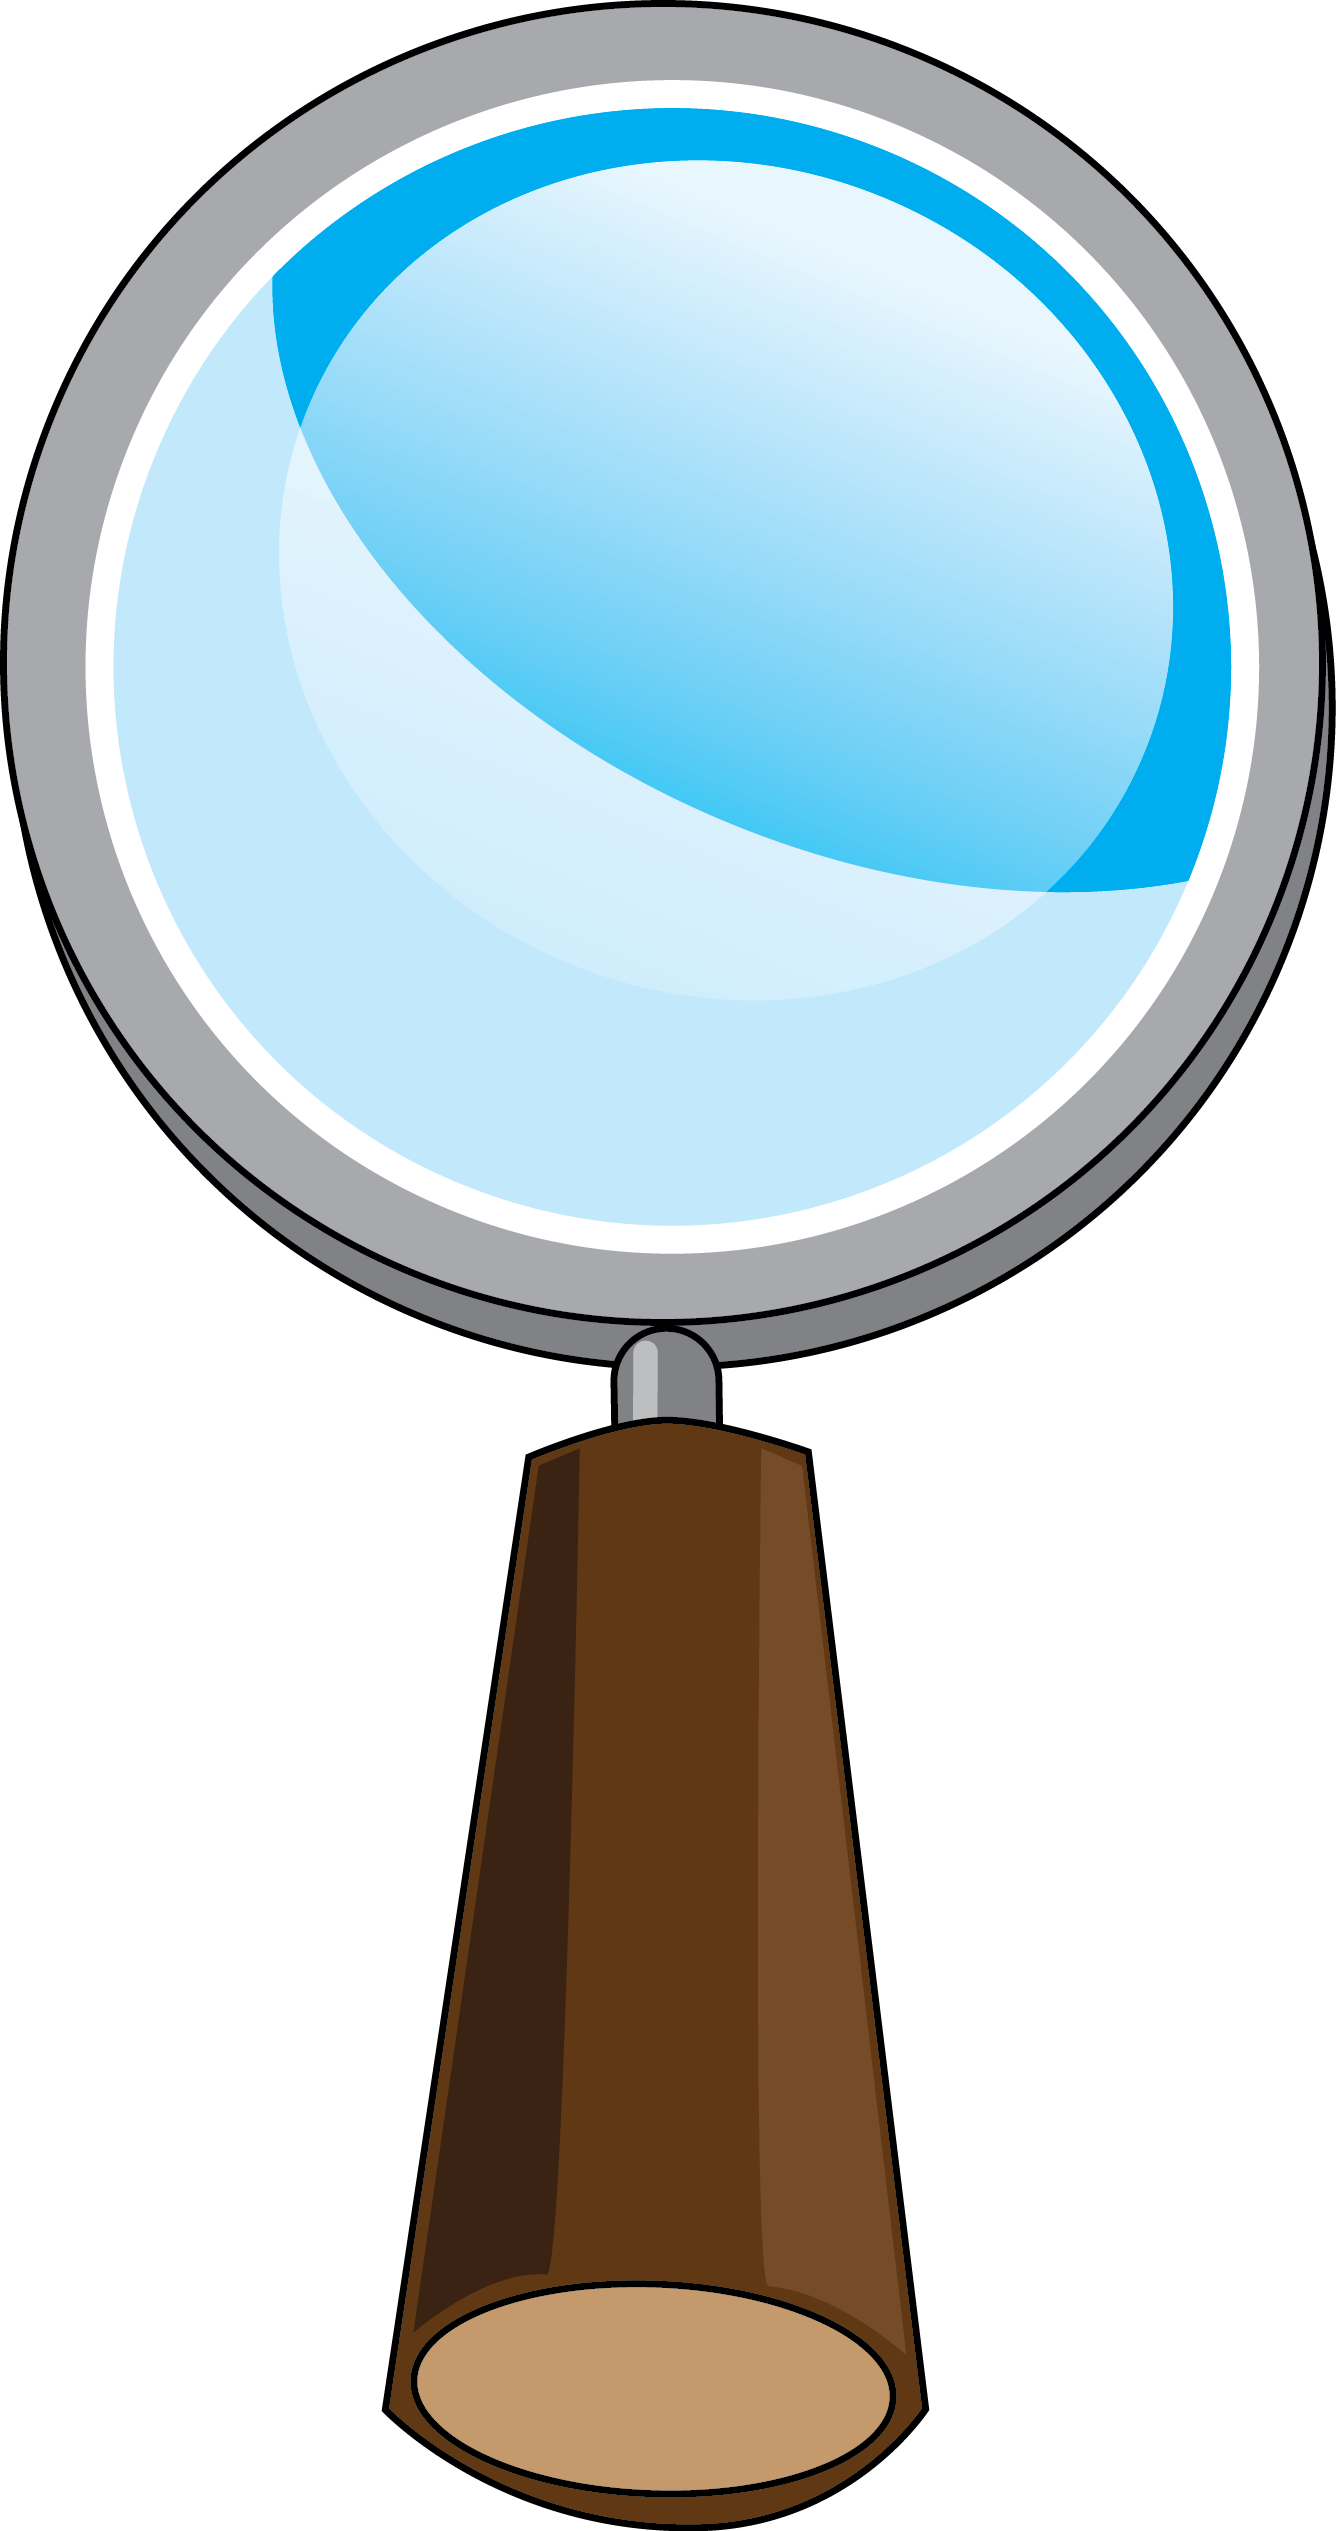 Magnifying glass magnifier glass clip art at vector clip art.